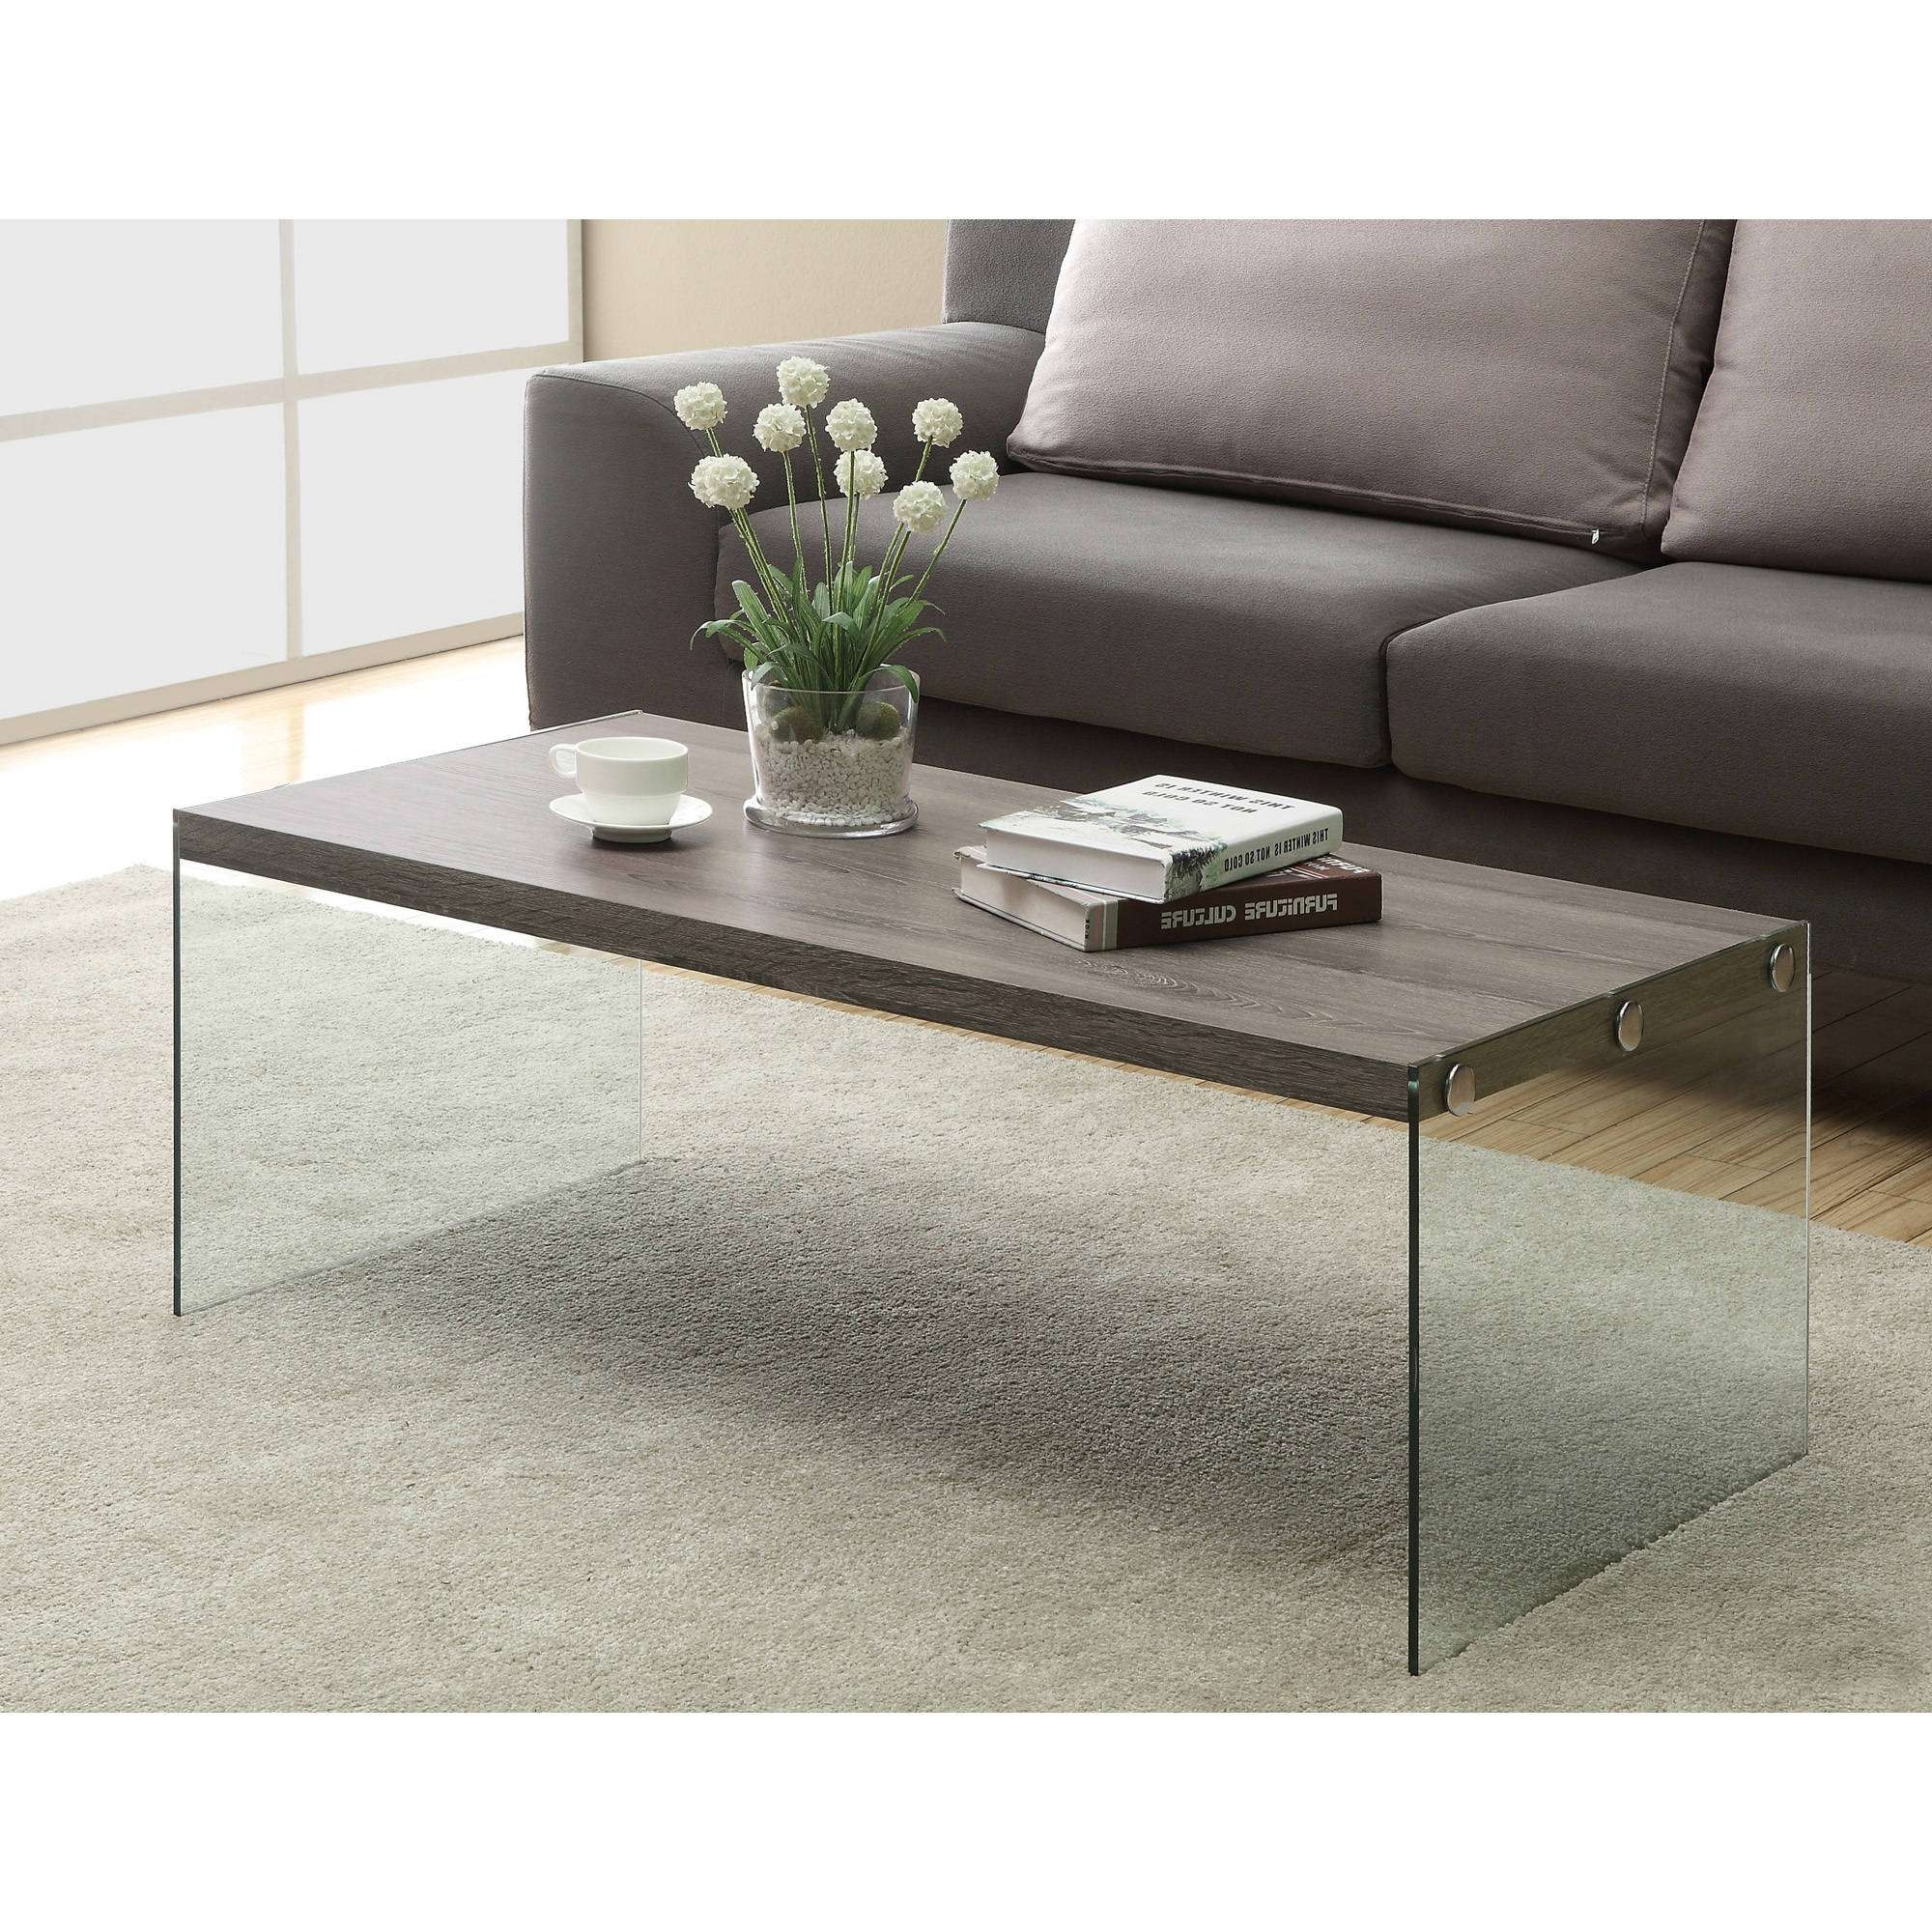 Wayfair Coffee Tables Ovalwayfair Coffee Tables In White Tags : 89 Pertaining To Well Known Wayfair Coffee Tables (View 6 of 20)